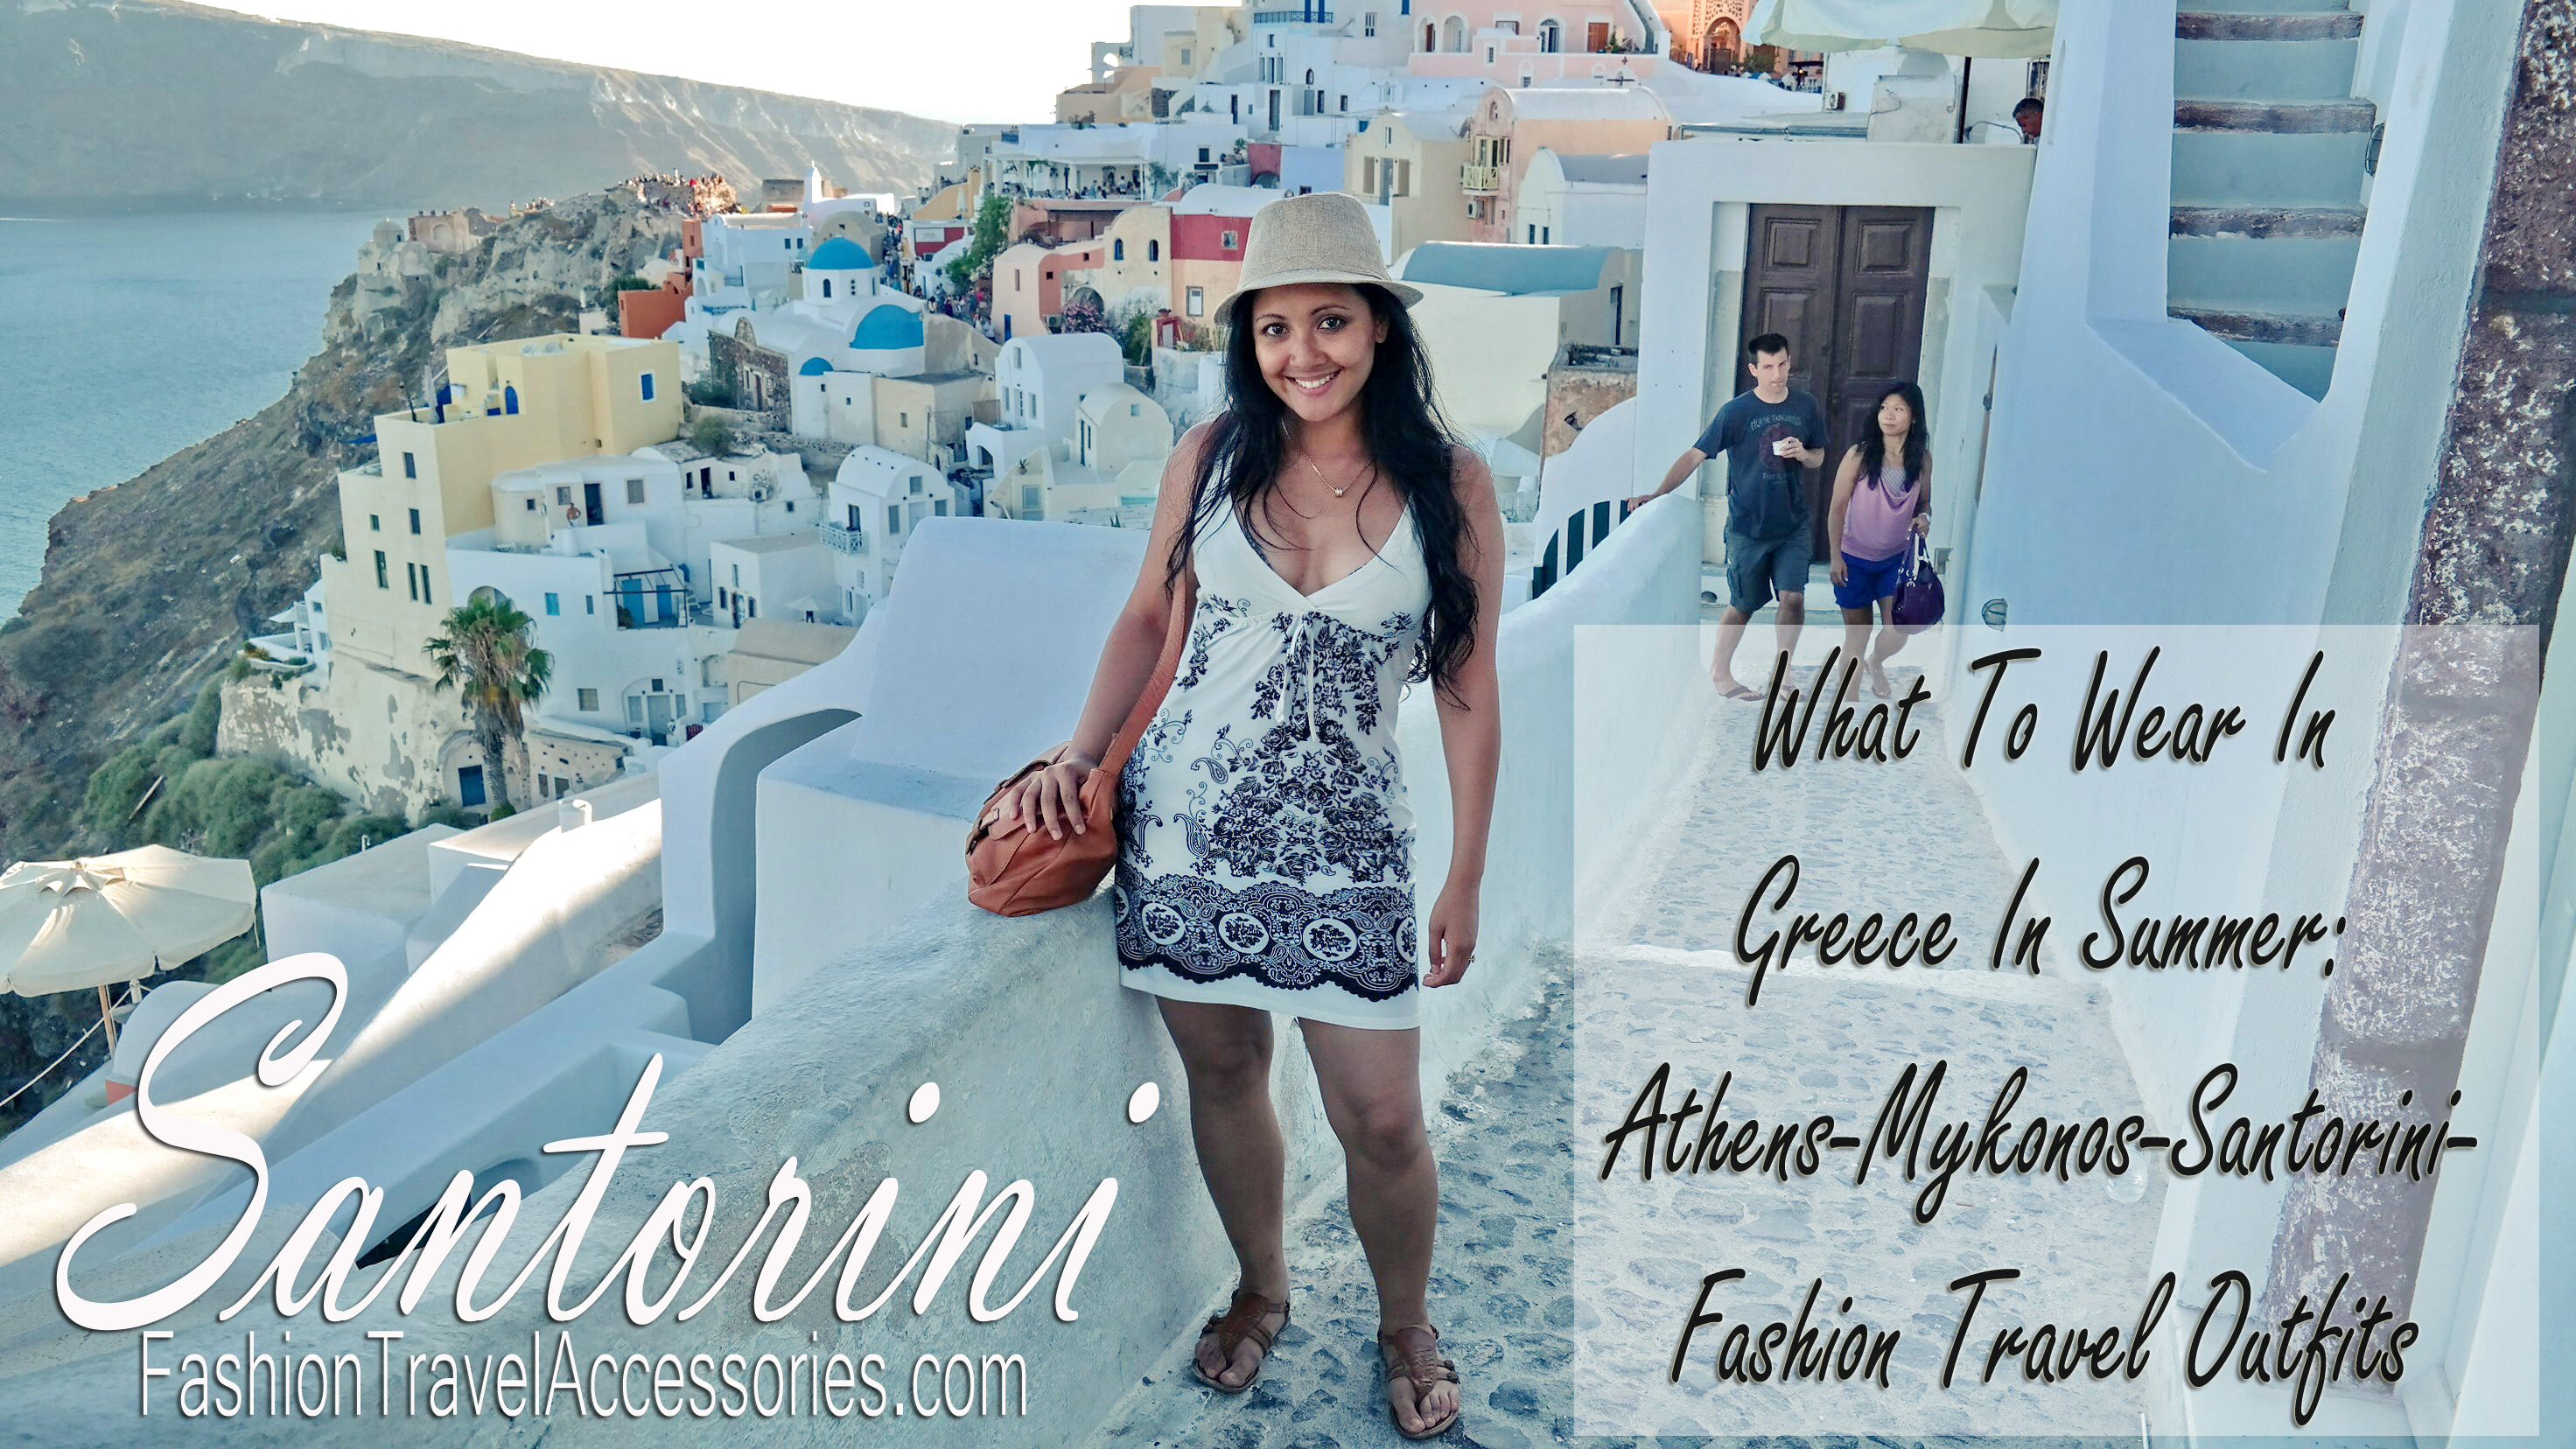 What-to-wear-in-Greece-Athens-Mykonos-Santorini-in-summer-1-copy.jpg